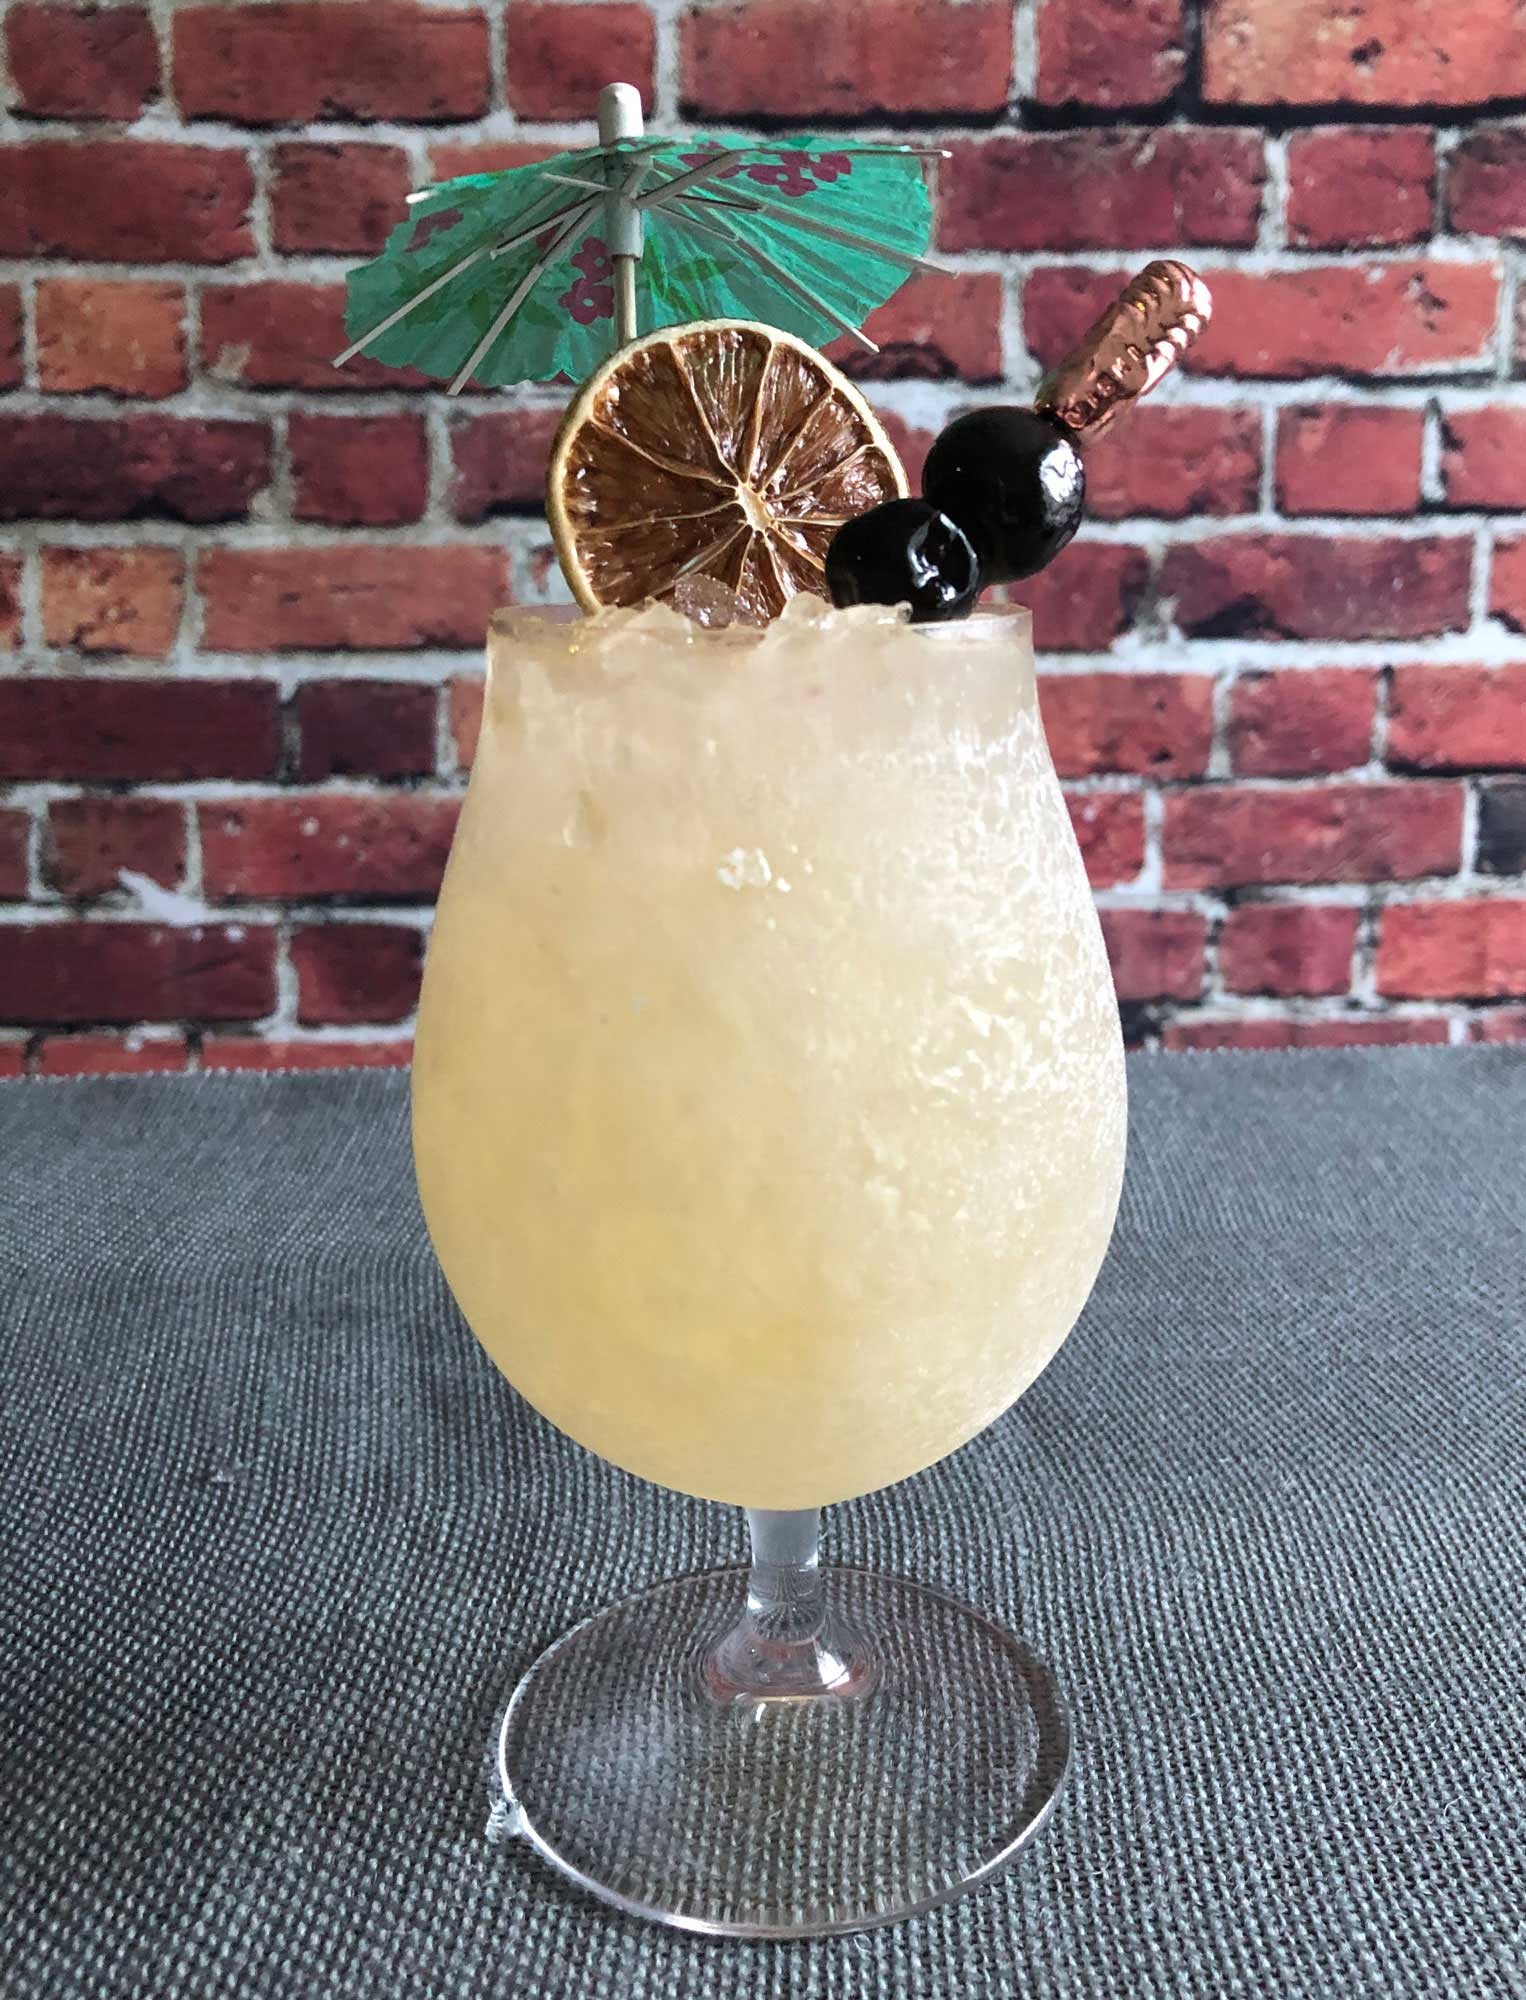 An example of the Commodore Swizzle, the mixed drink (frappe), by Zachary Gensicke, The Saturn Room, Tulsa, Oklahoma, featuring Hayman's Royal Dock Navy Strength Gin, Dolin Génépy le Chamois Liqueur, lime juice, raw sugar syrup, orange bitters, Bittercube Jamaican #2 Bitters, and absinthe; photo by Lee Edwards